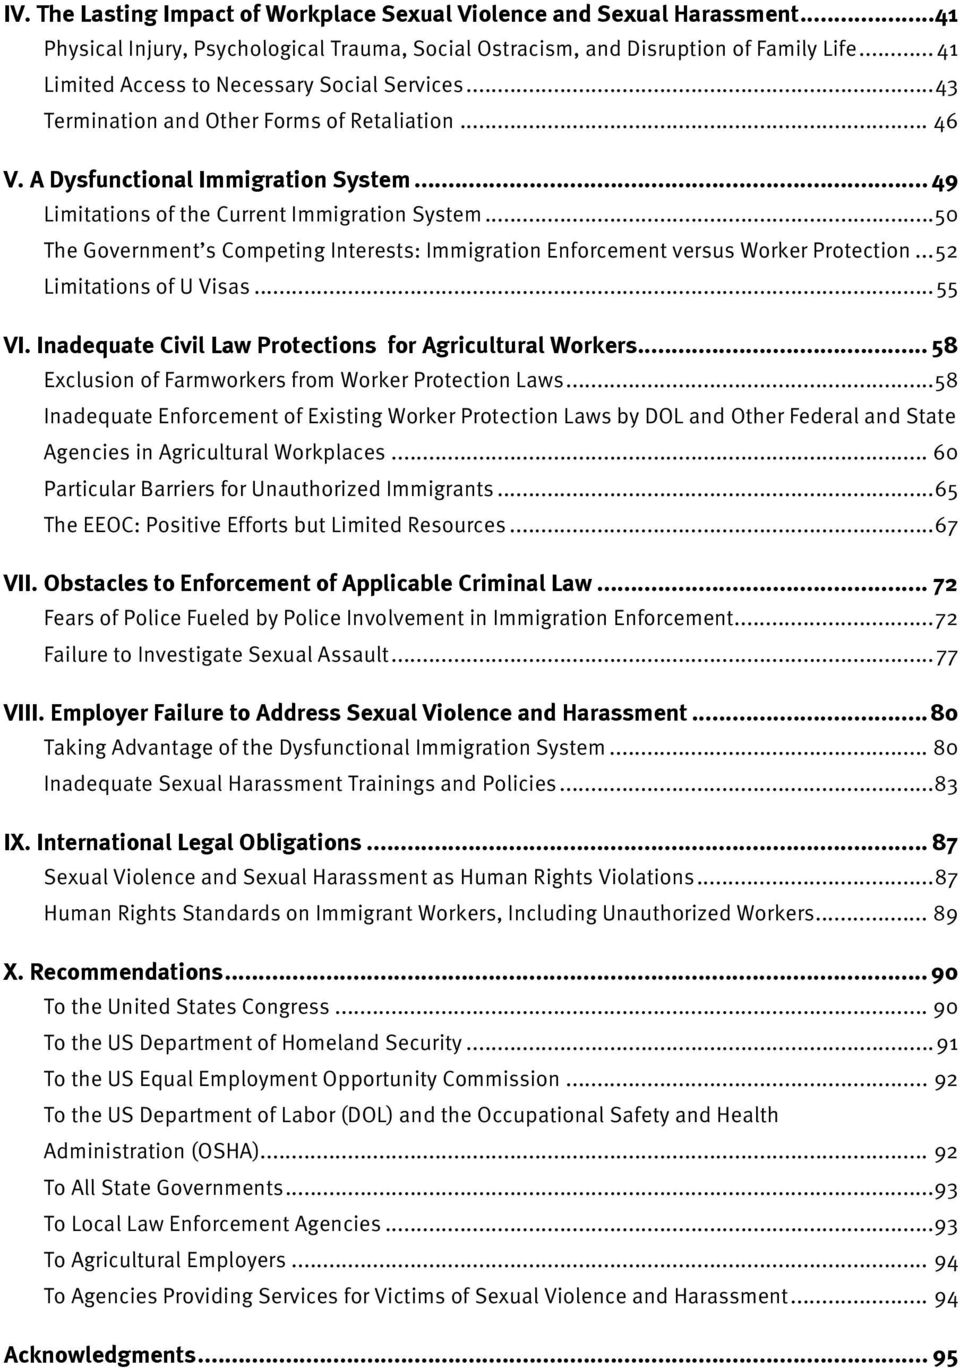 .. 50 The Government s Competing Interests: Immigration Enforcement versus Worker Protection... 52 Limitations of U Visas... 55 VI. Inadequate Civil Law Protections for Agricultural Workers.